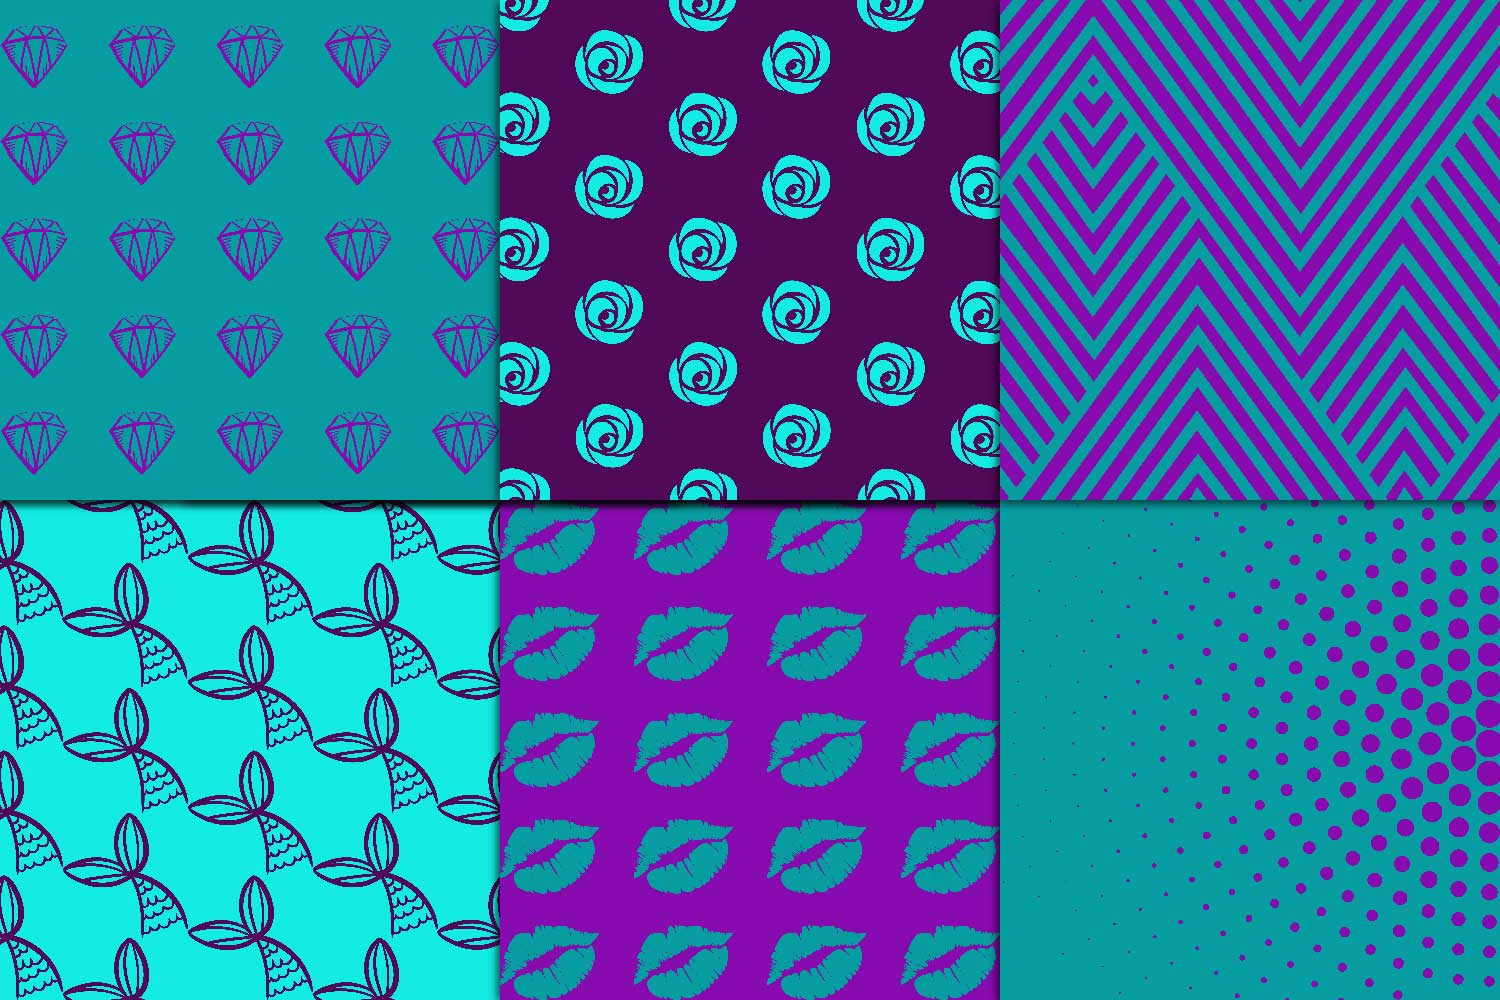 Purple & Teal Digital Paper example image 2